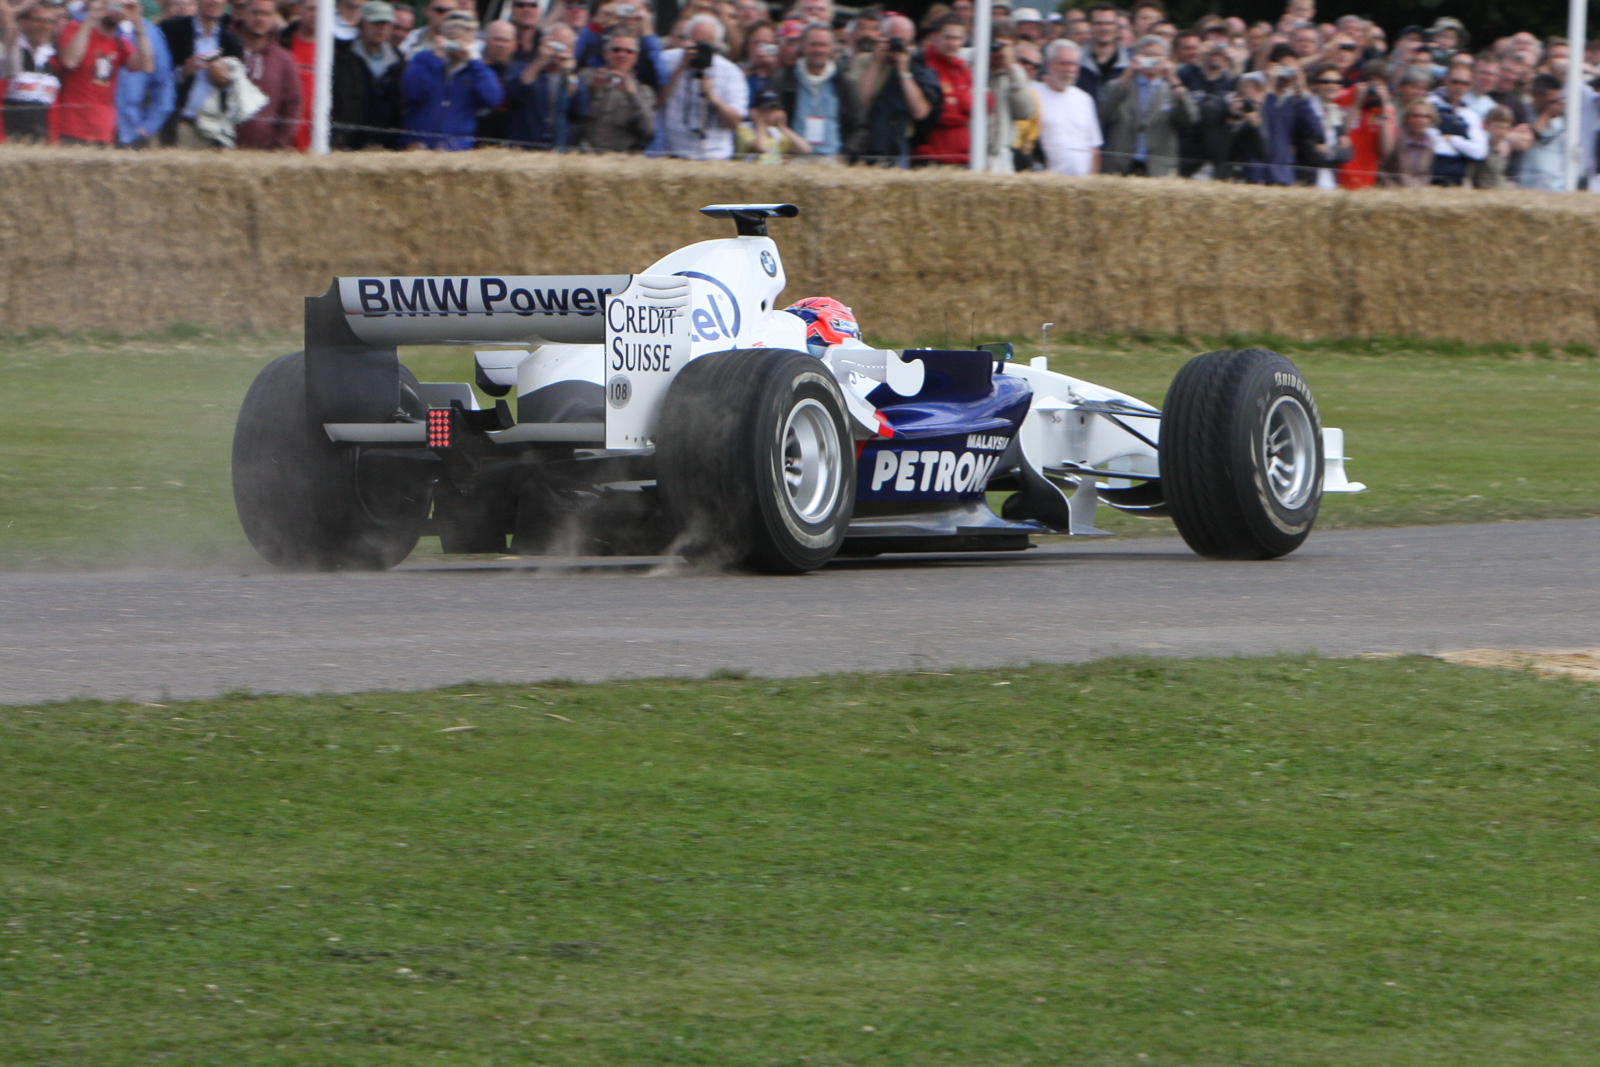 20080711 - Goodwood Festival of Speed -080711 -006